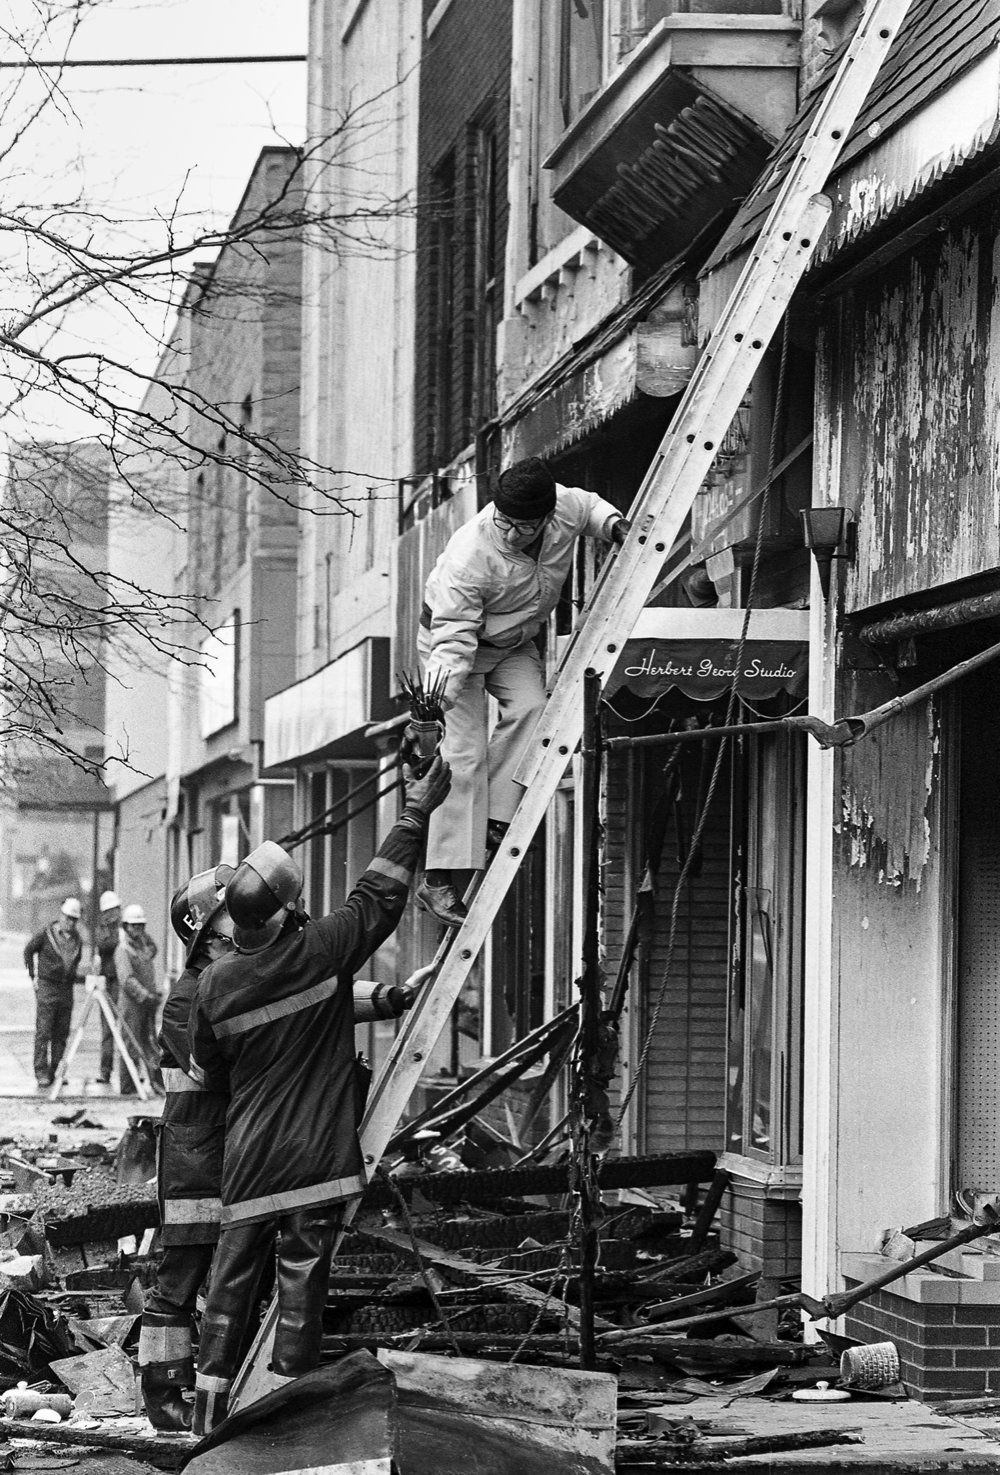 Fire destroys several downtown buildings at the intersection of Fifth and Monroe streets, including the Herbert Georg photography studio at 217 1/2 S. Fifth St., Feb. 19, 1980. Photos by Chris Covatta and Bill Hagen File/The State Journal-Register